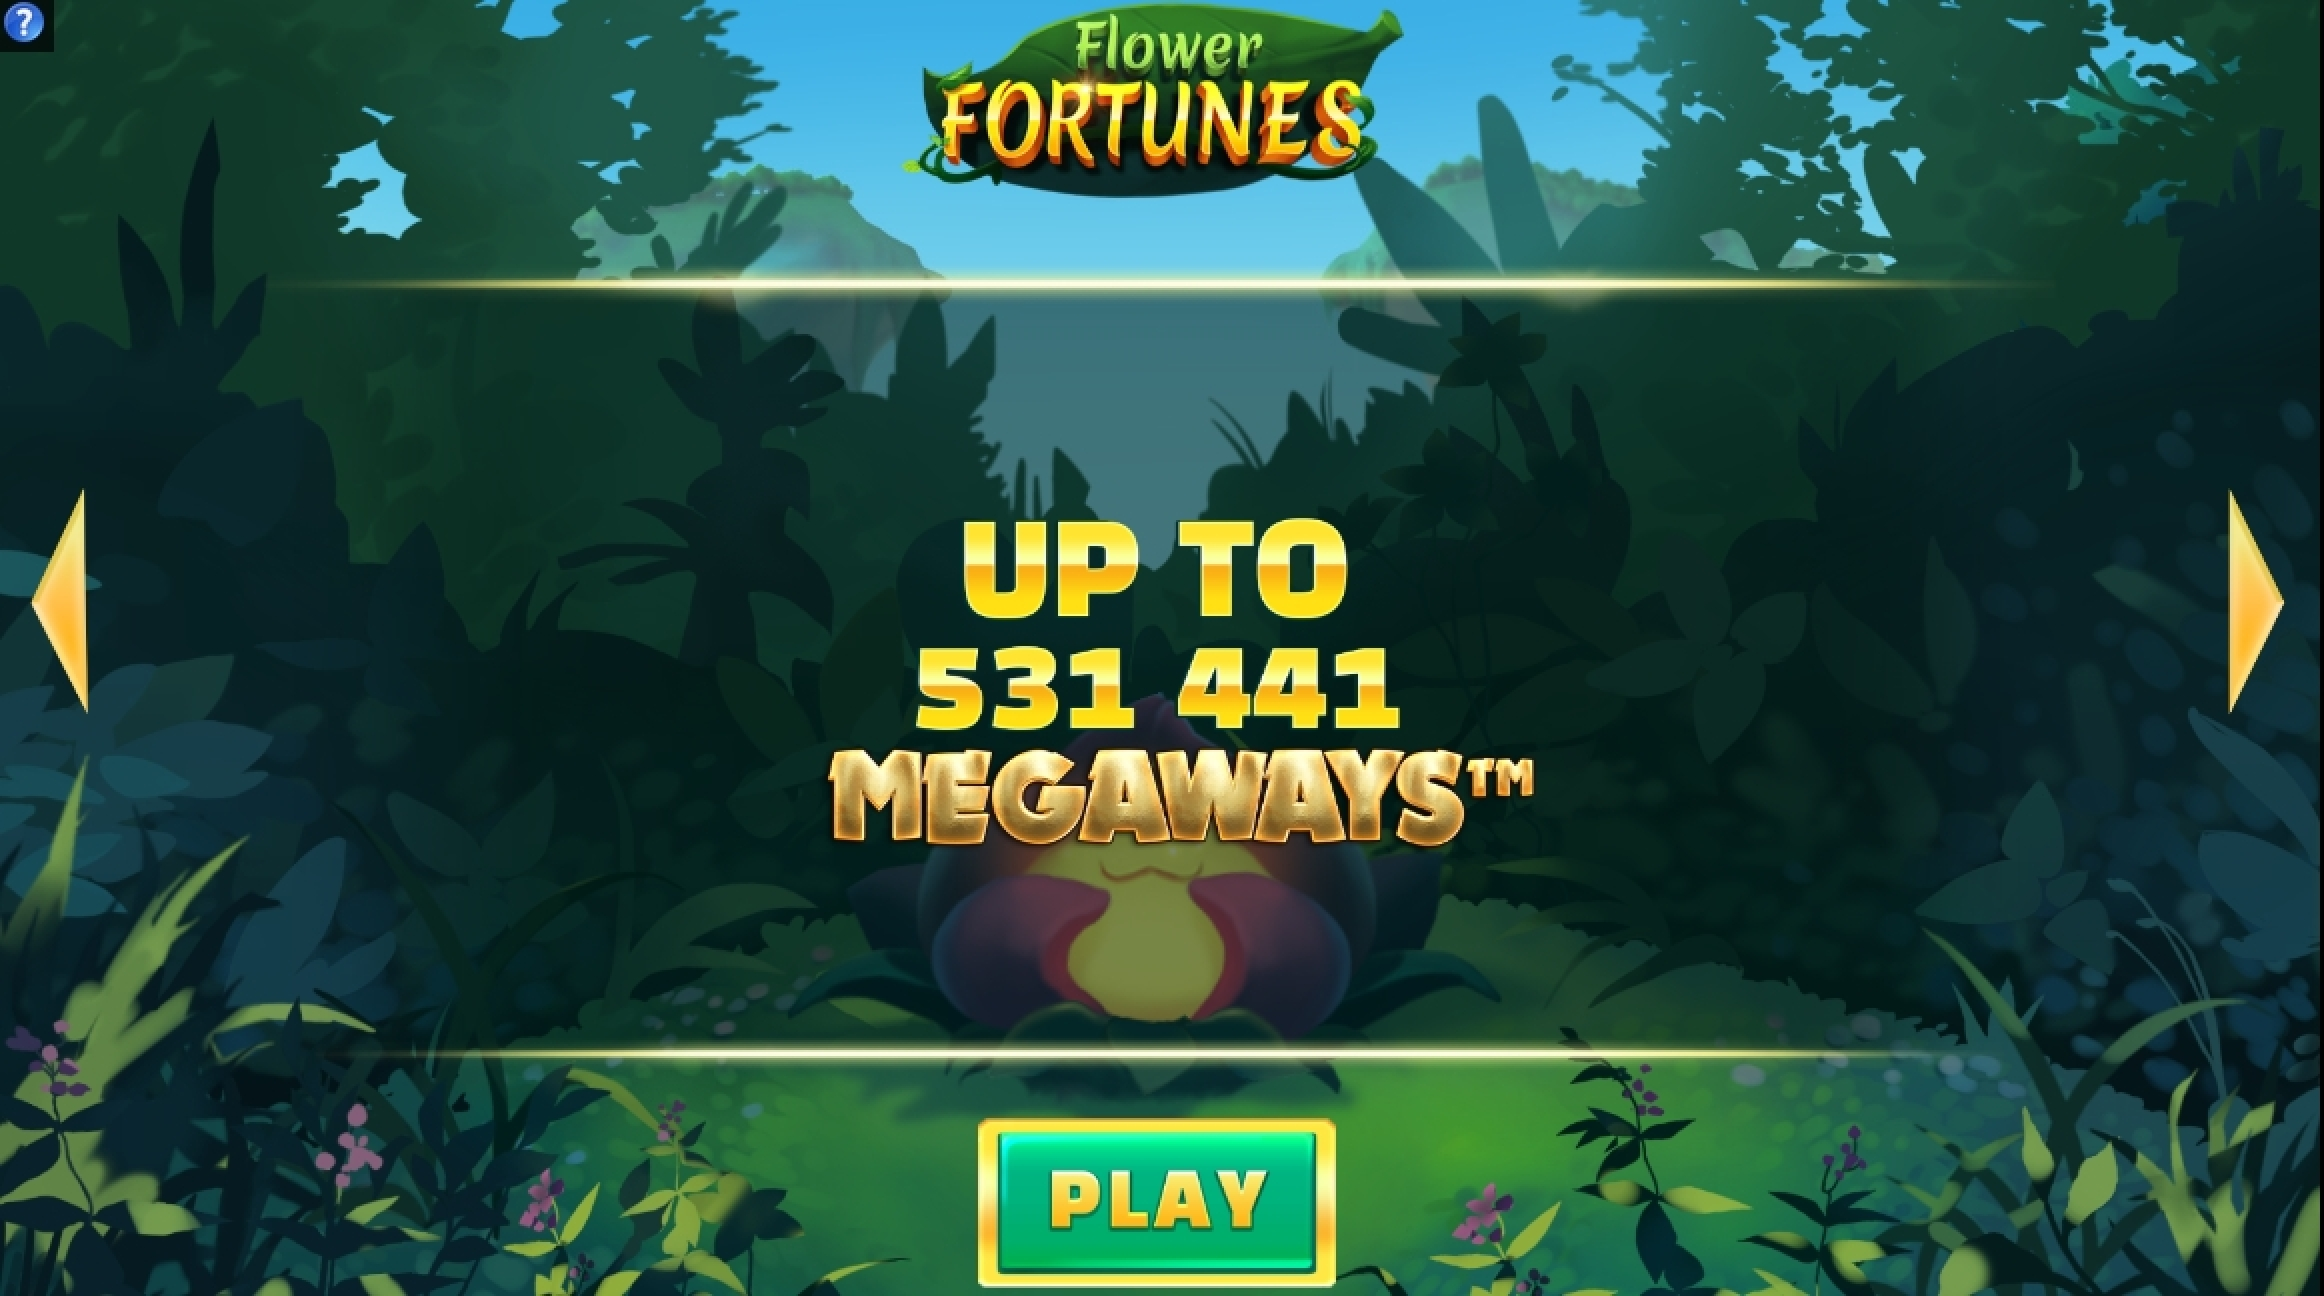 Play Flower Fortunes Free Casino Slot Game by Fantasma Games